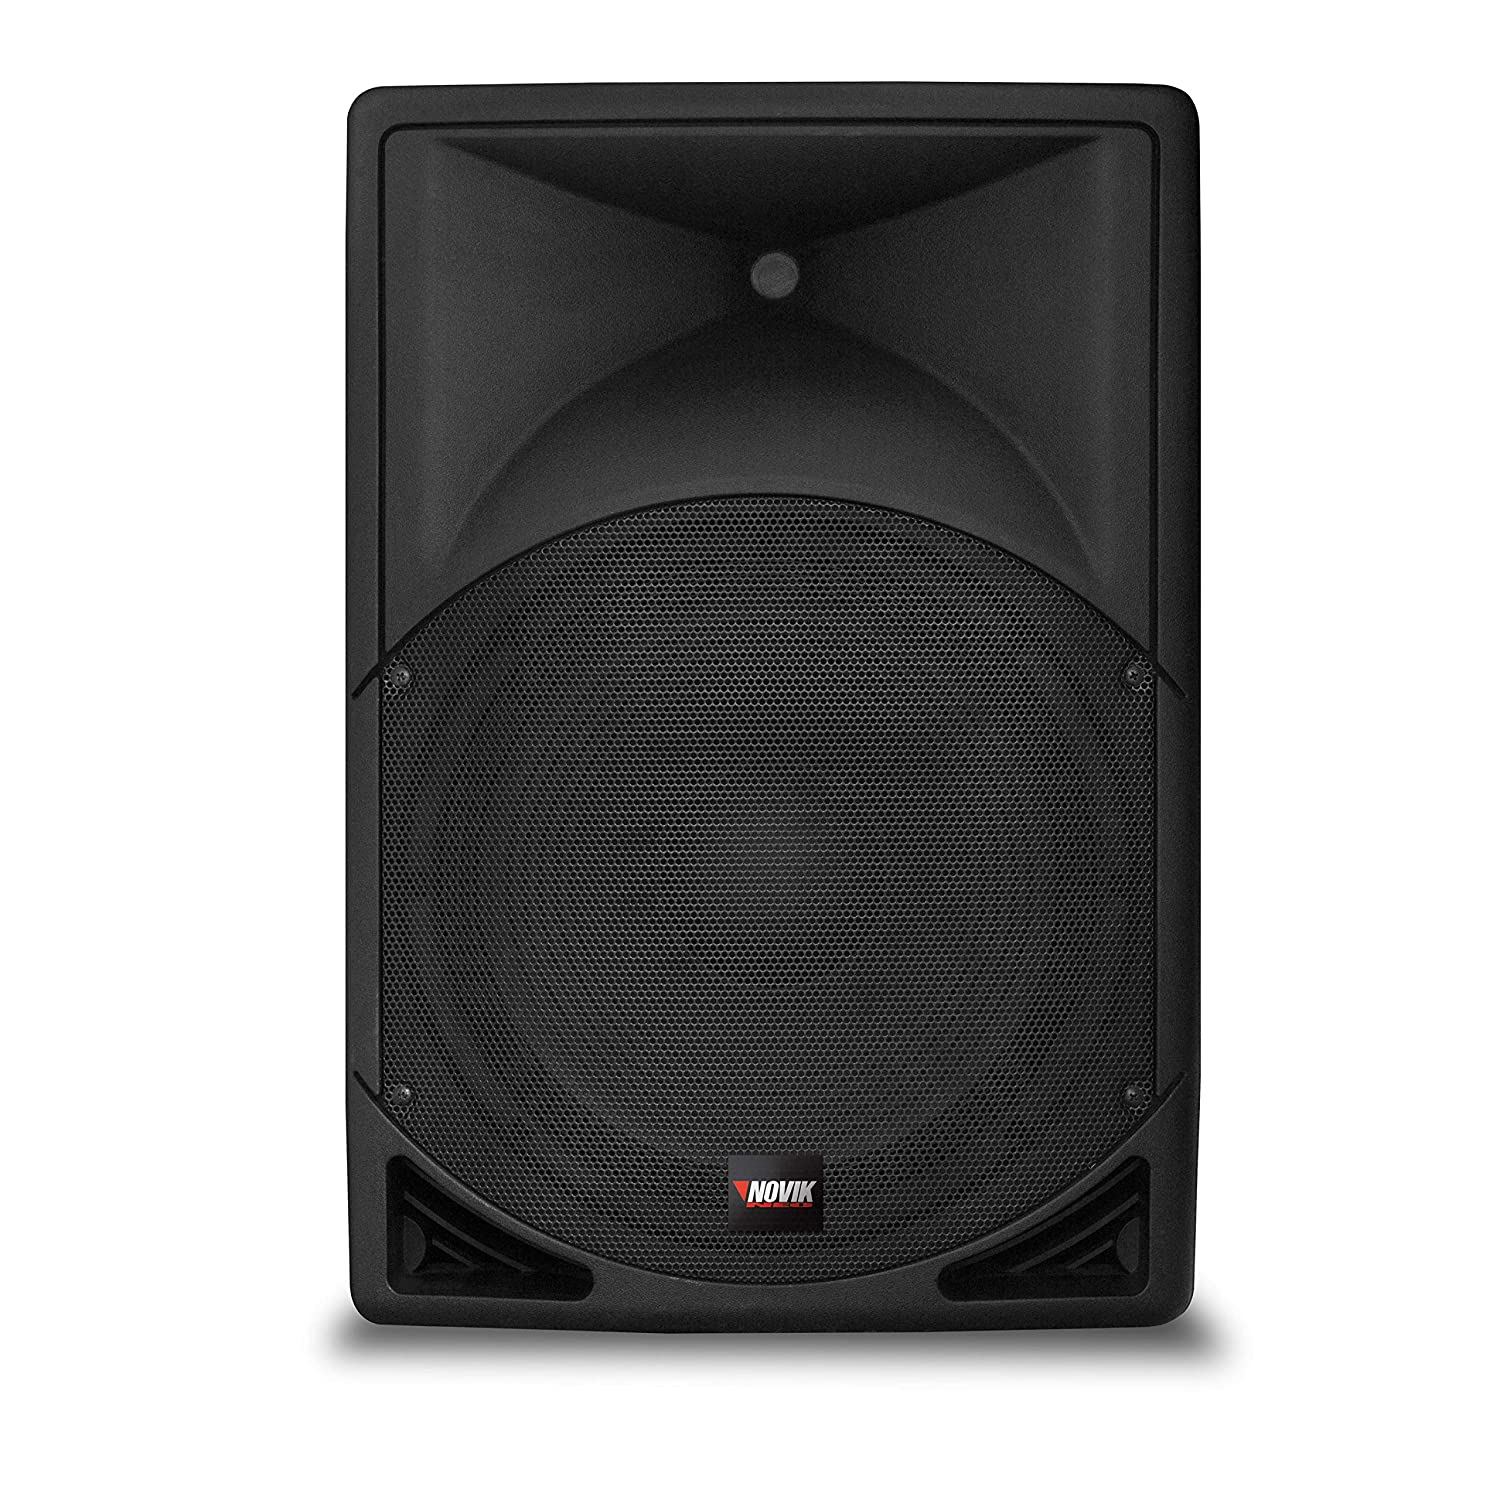 NOVIK NEO EVO 10P - 2 way Passive Loudspeaker System, Peak power 600W, Woofer: 10